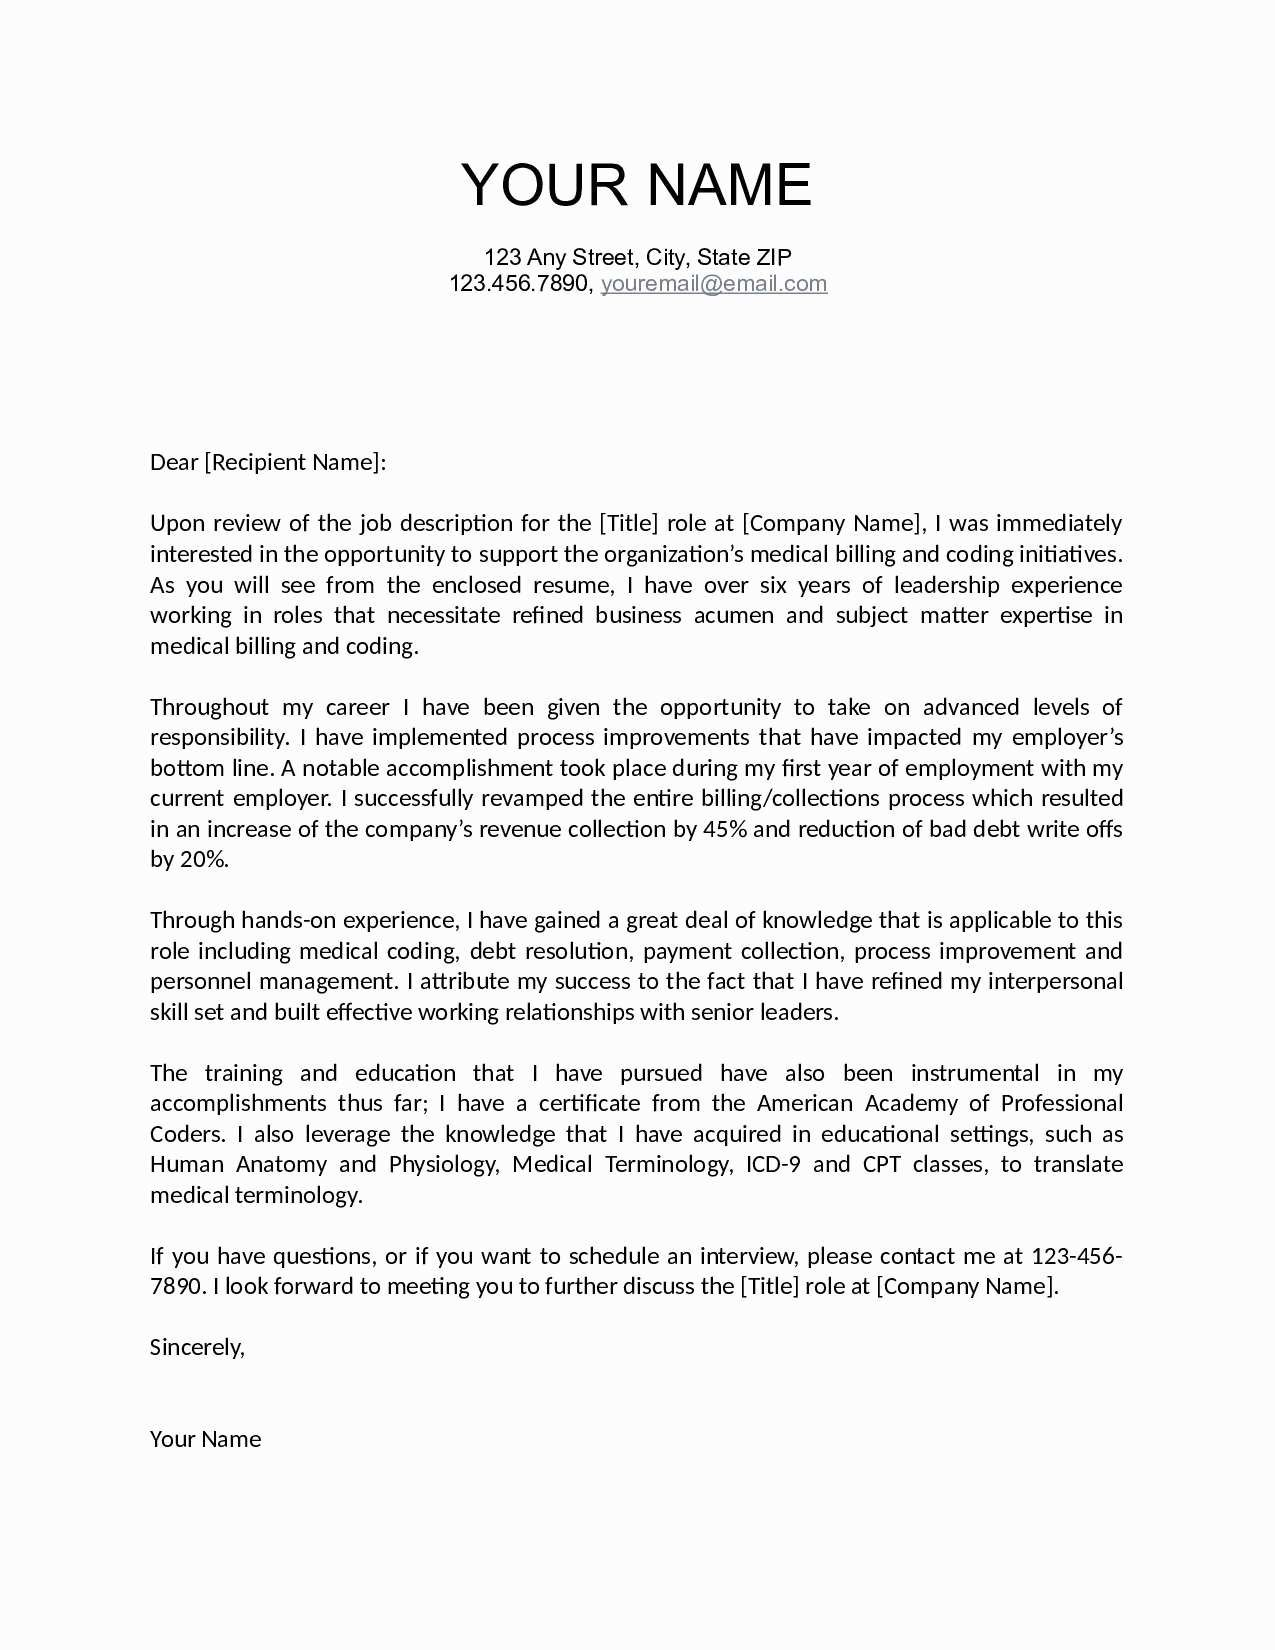 Free Reference Letter Template for Employment - Best Re Mendation Letter Template for Job